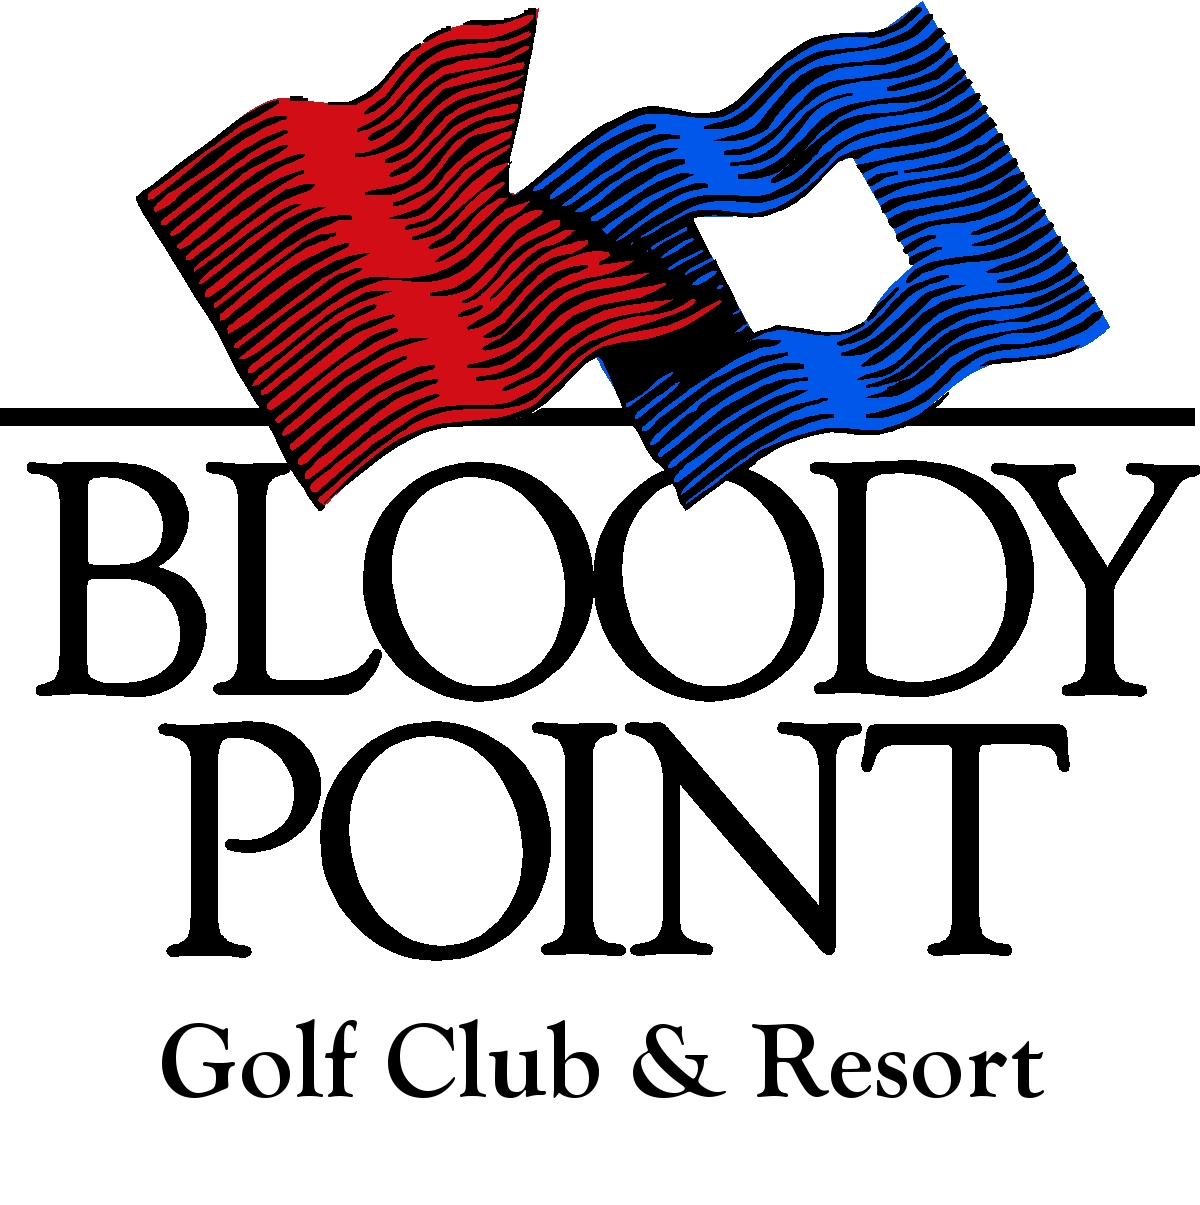 Bloody Point Golf Club & Resort